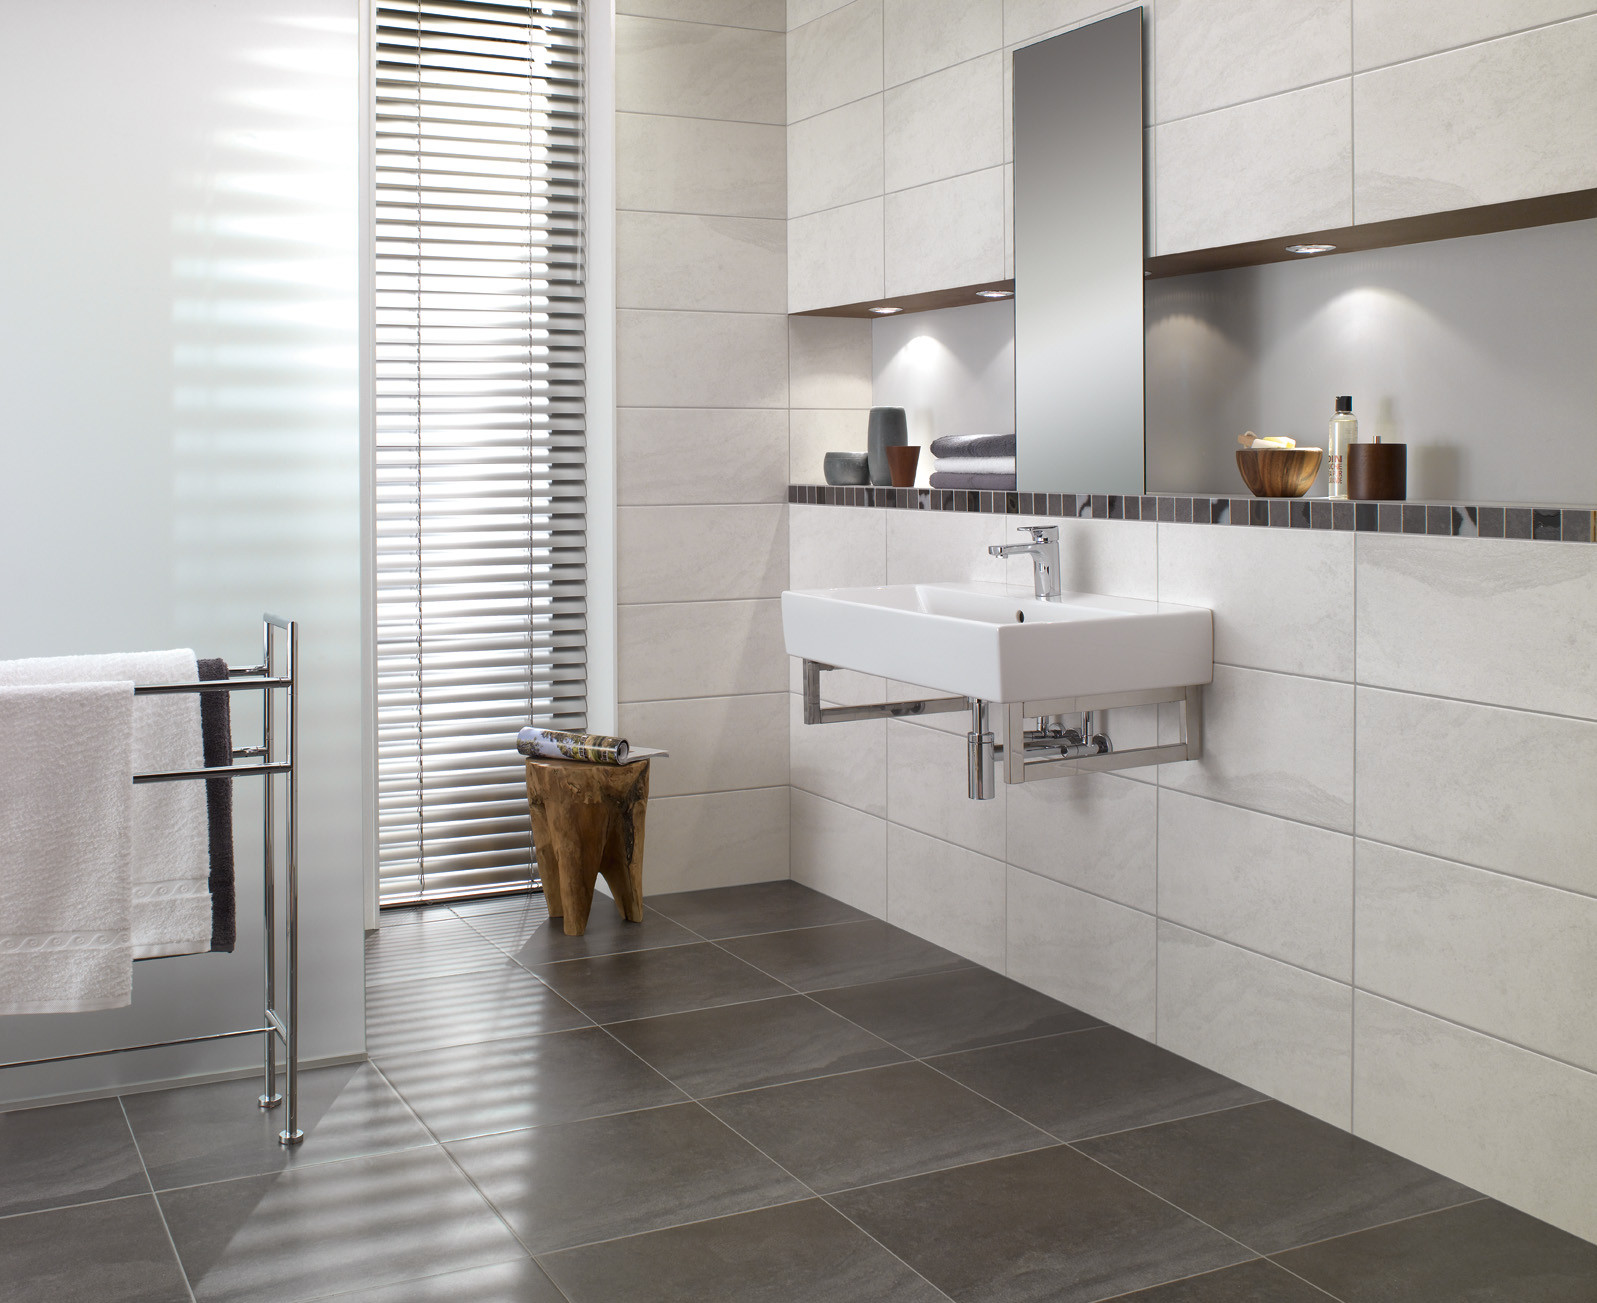 Design shapes life villeroy boch launches bathroom for Carrelage villeroy et boch salle de bain